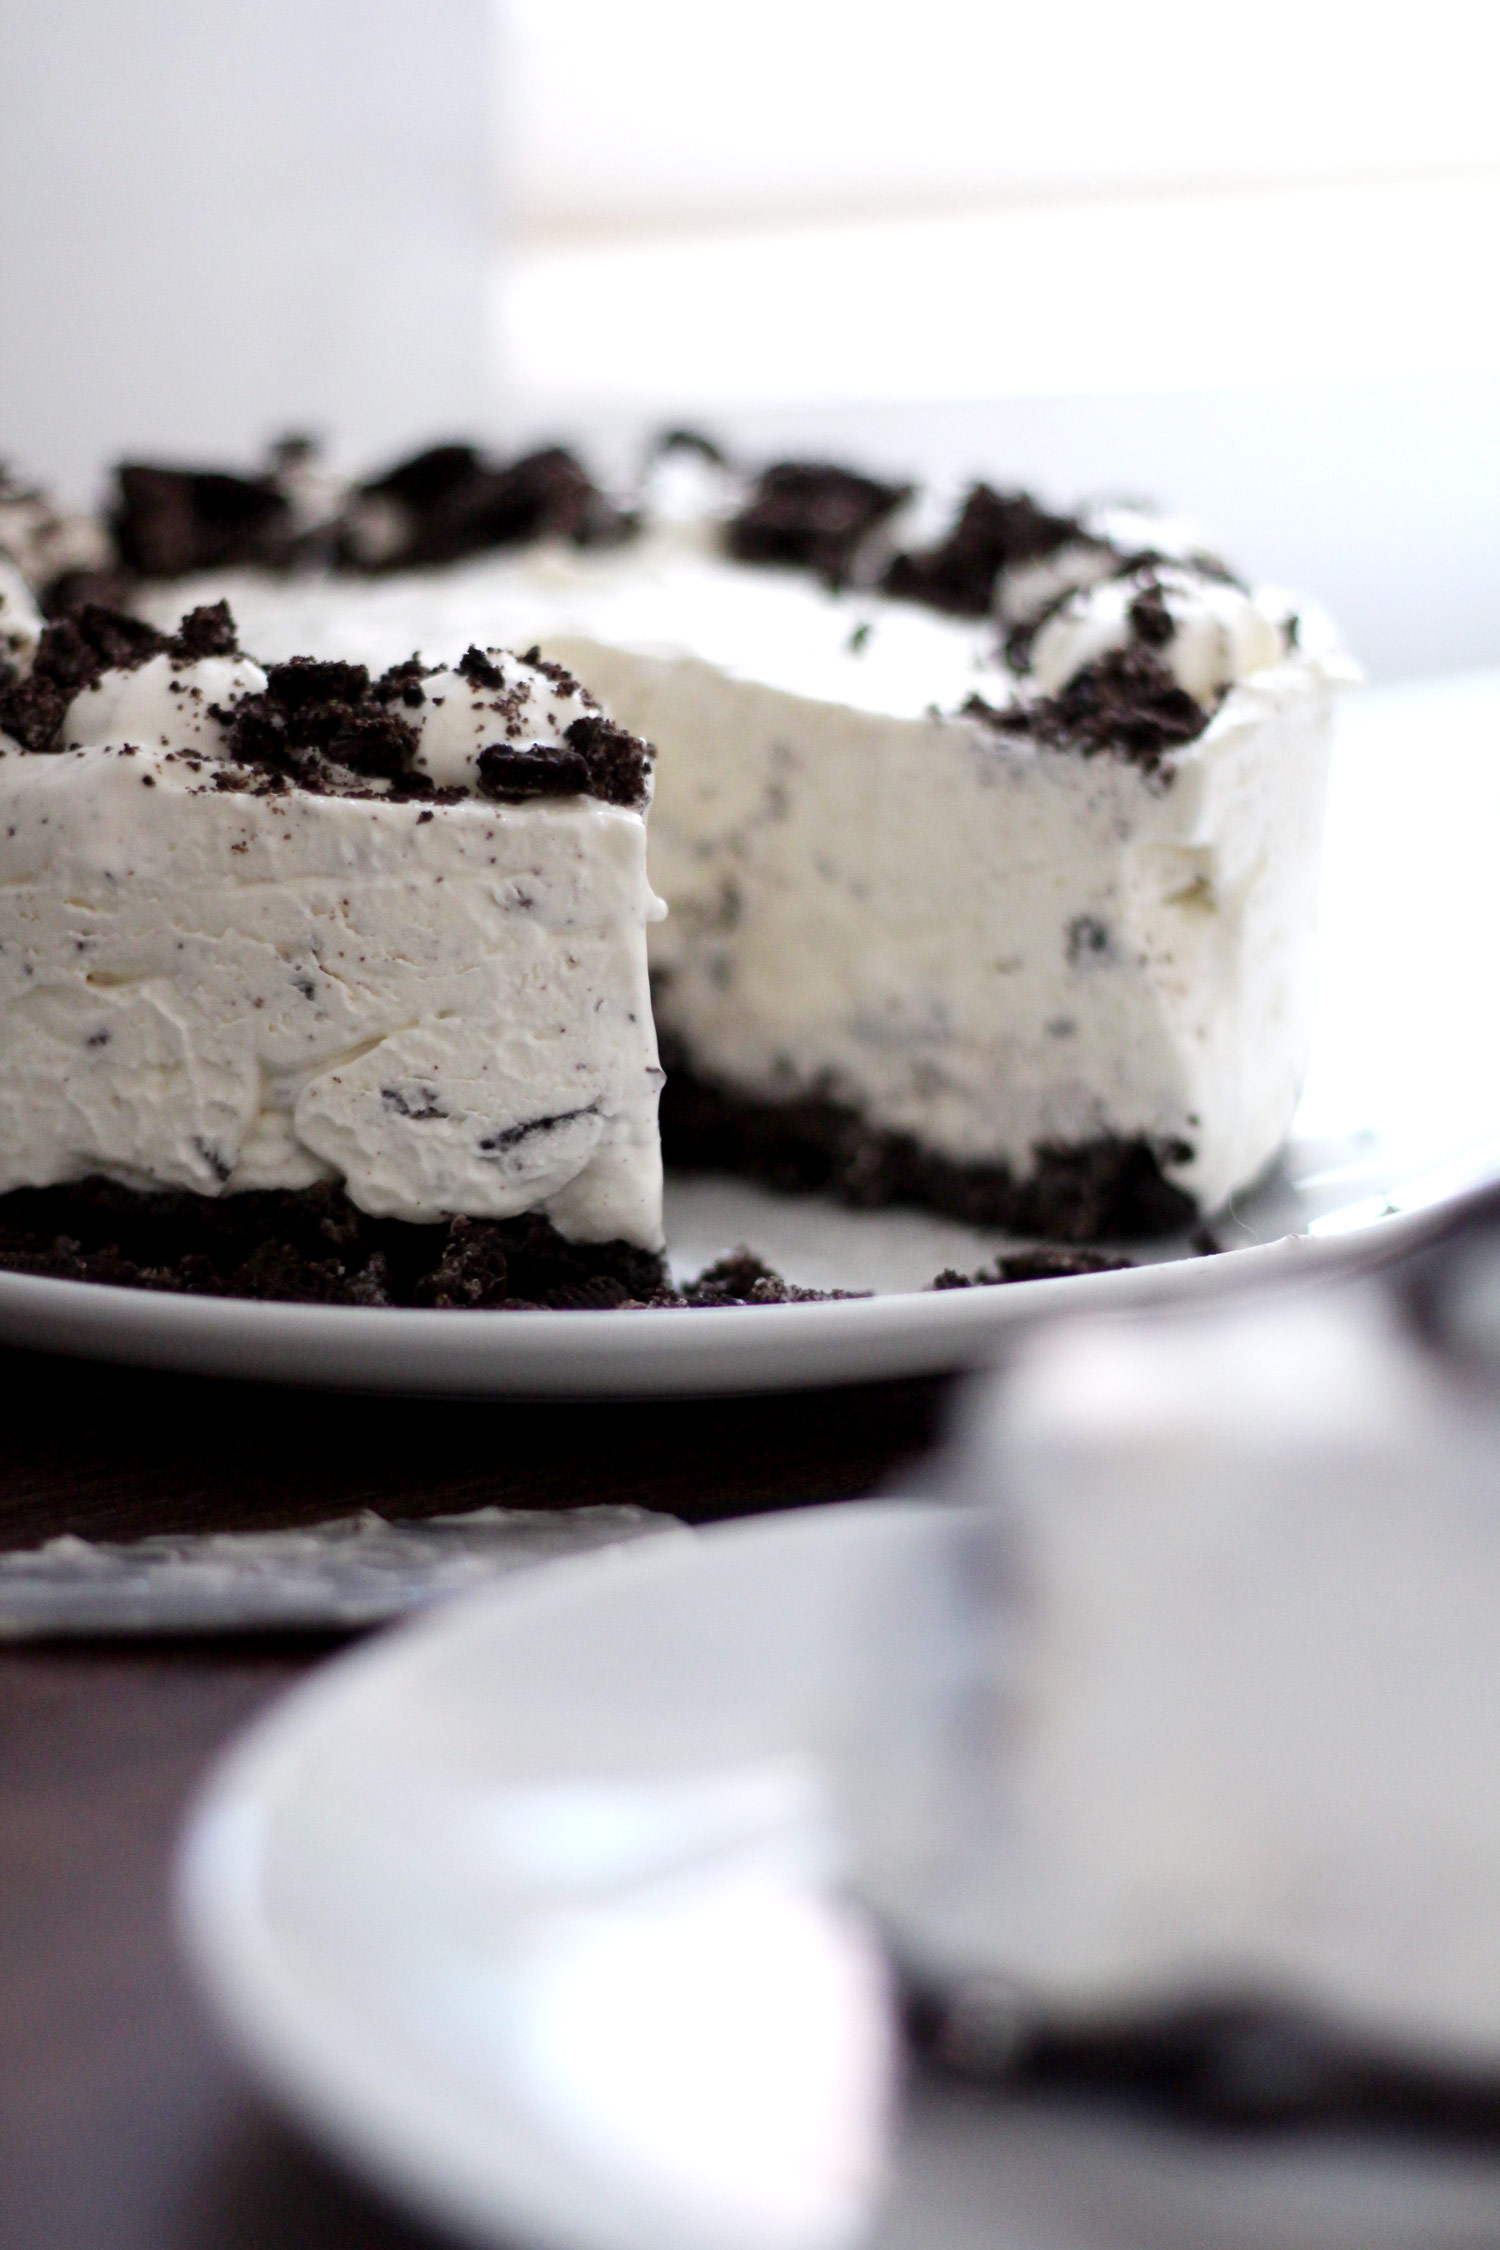 oreo-cheesecake-recipe-no-bake-easy-guide-7